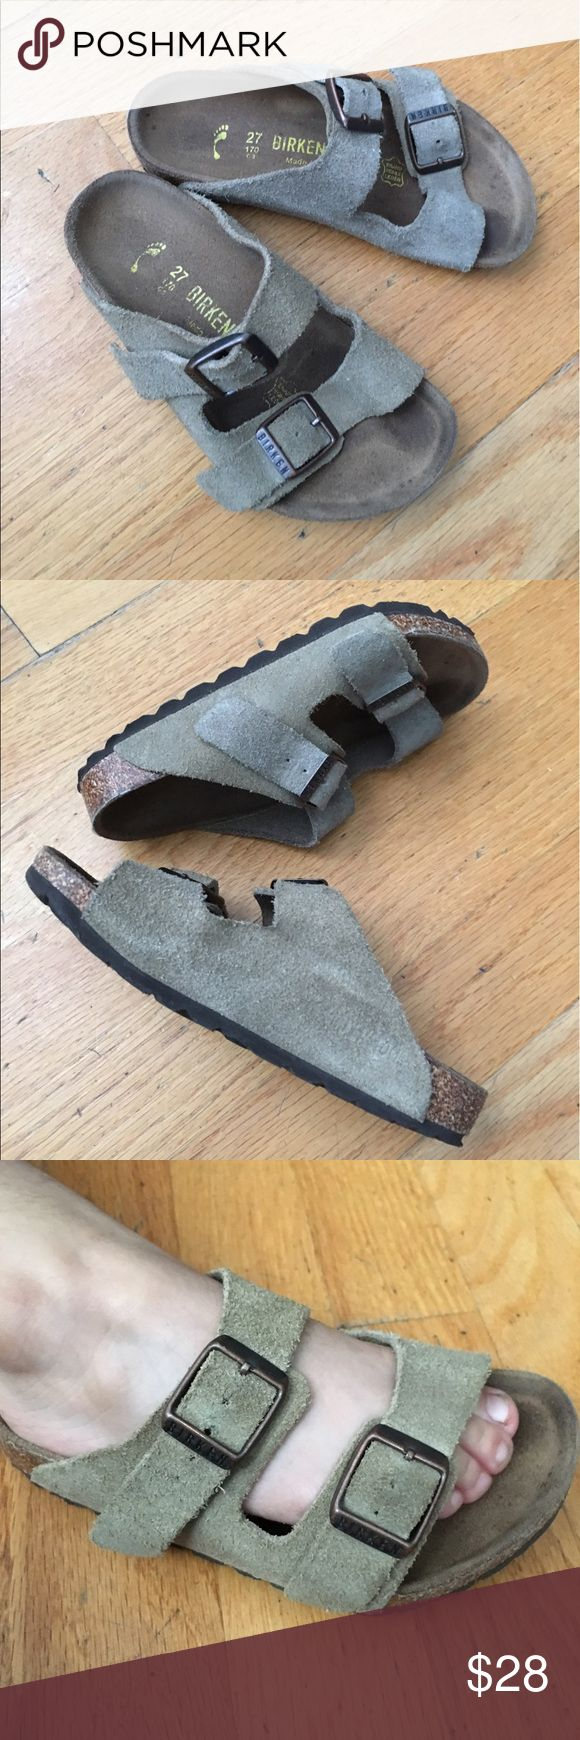 🎉SALE🎉Birkenstock kids Sandals Very cute Sandals. In good condition. Great for the summer. Size 27. One Sandal has a different color as you can see in the first picture. Birkenstock Shoes Sandals & Flip Flops